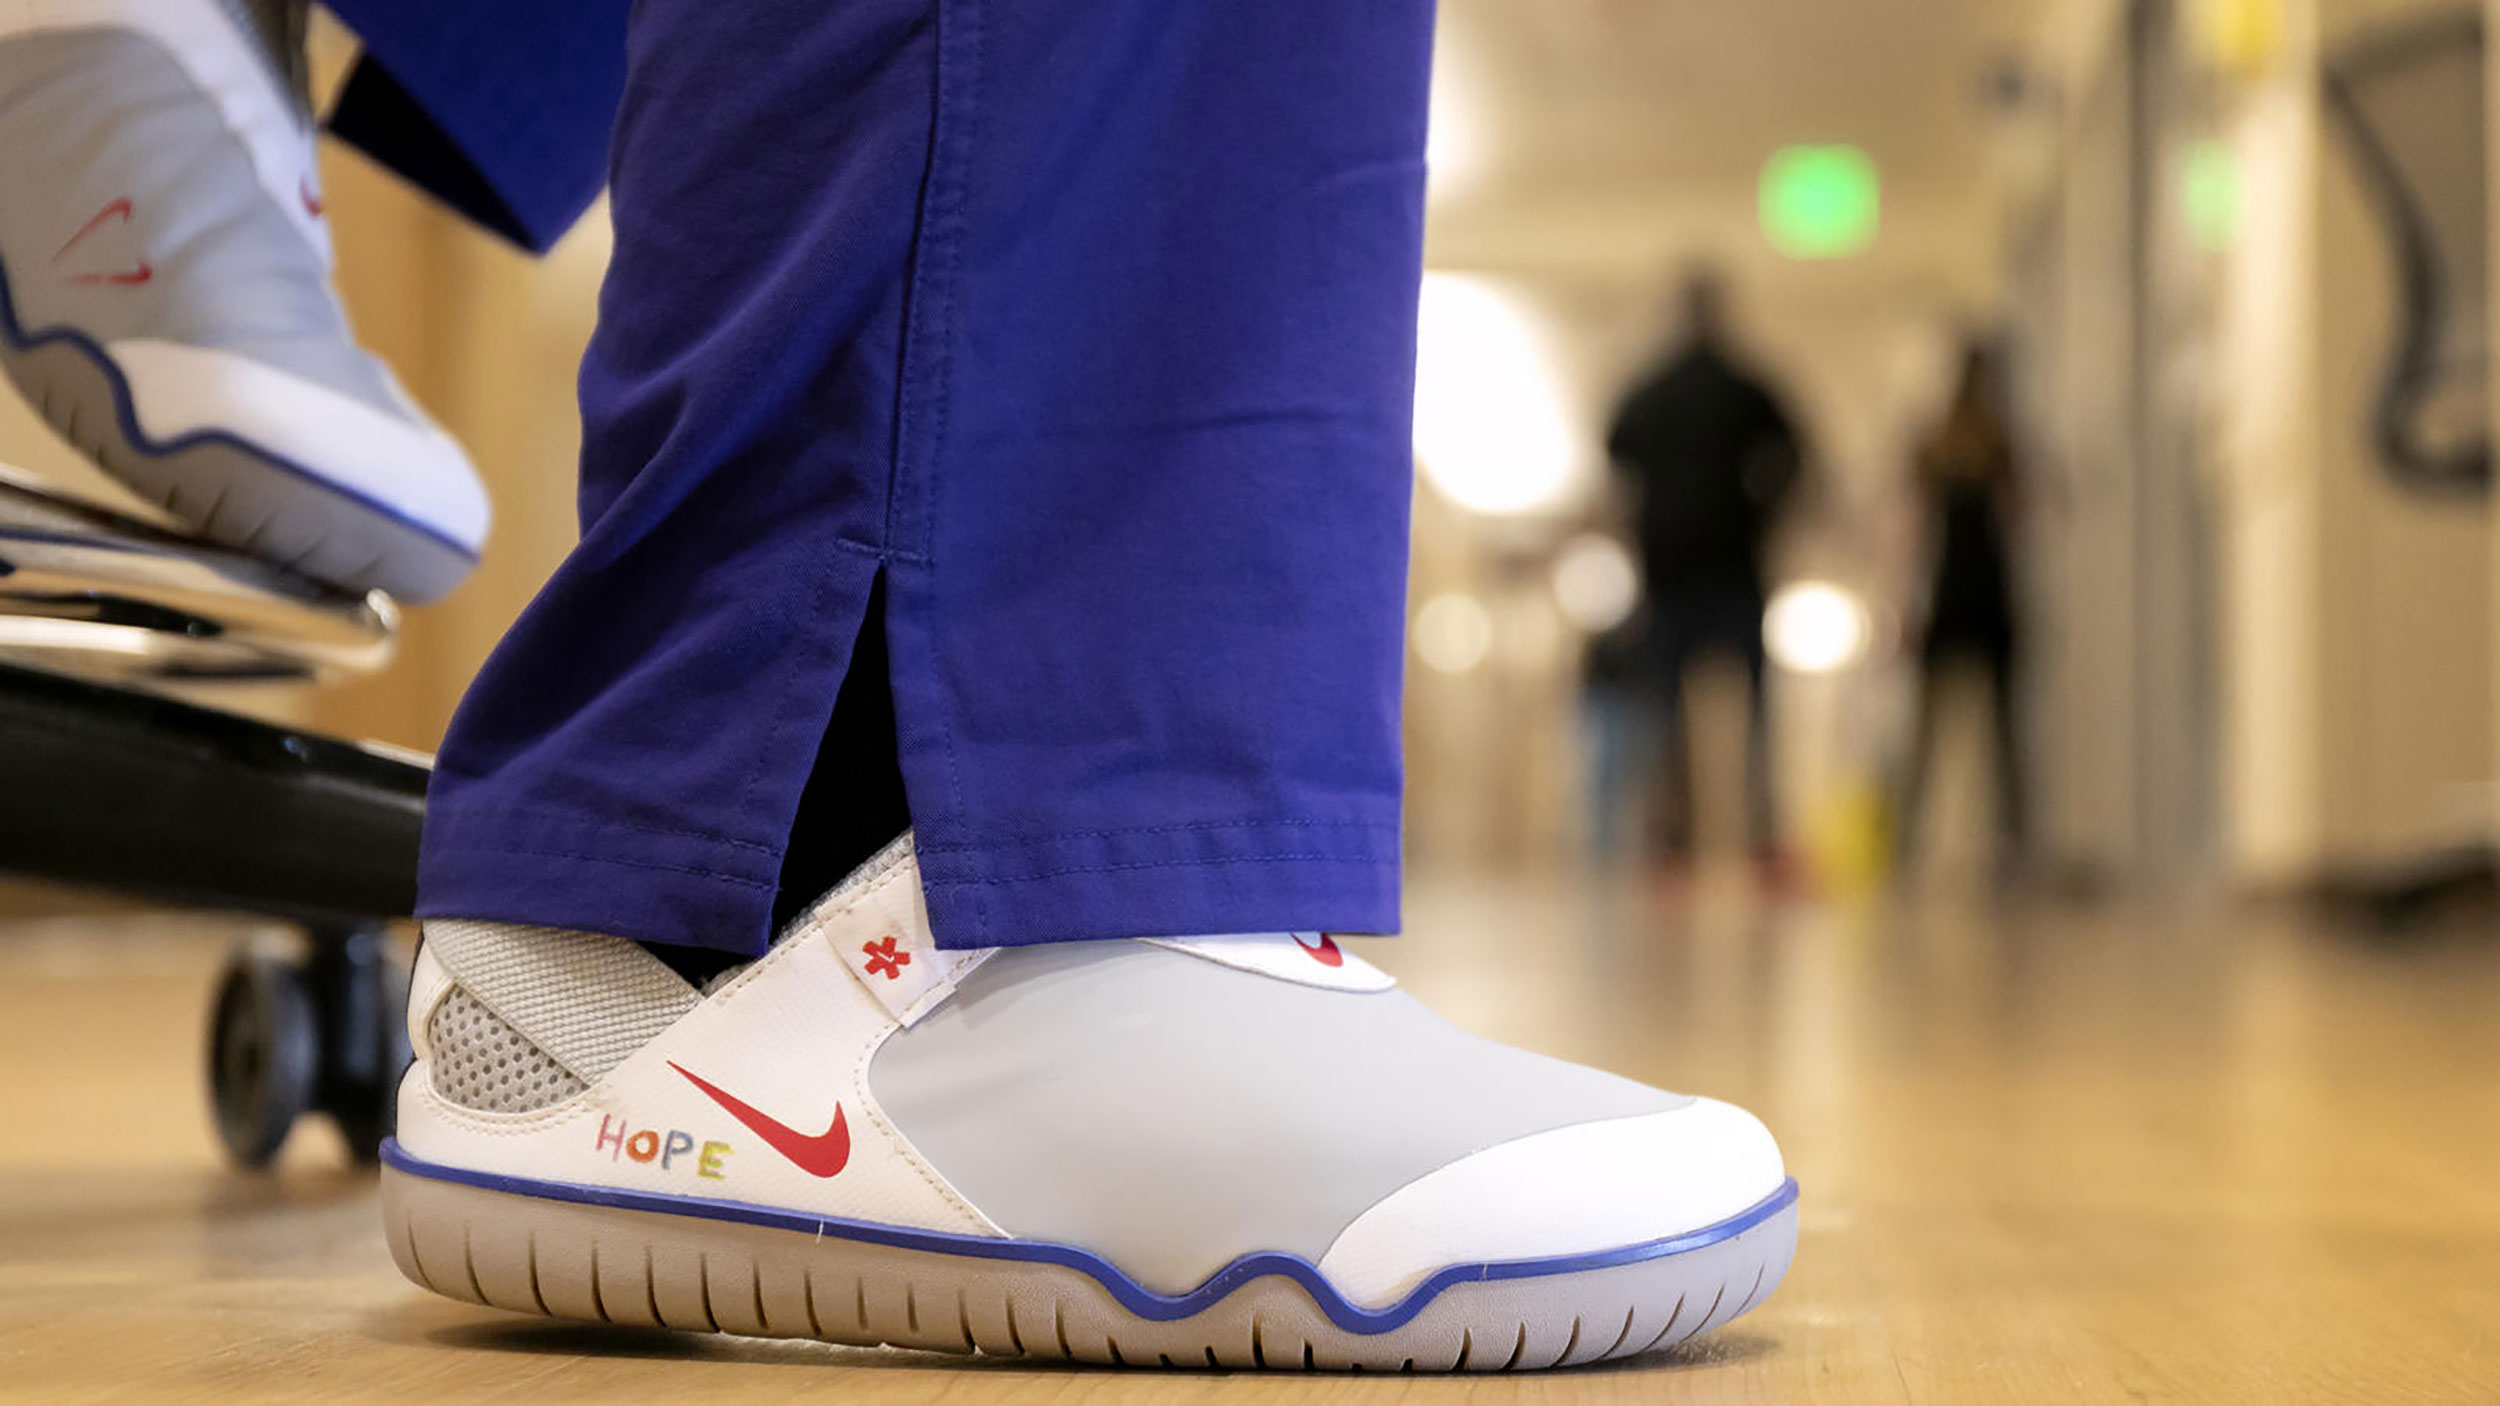 Nike To Donate 30 000 Shoes To Healthcare Workers Fighting Covid 19 Ktsm 9 News